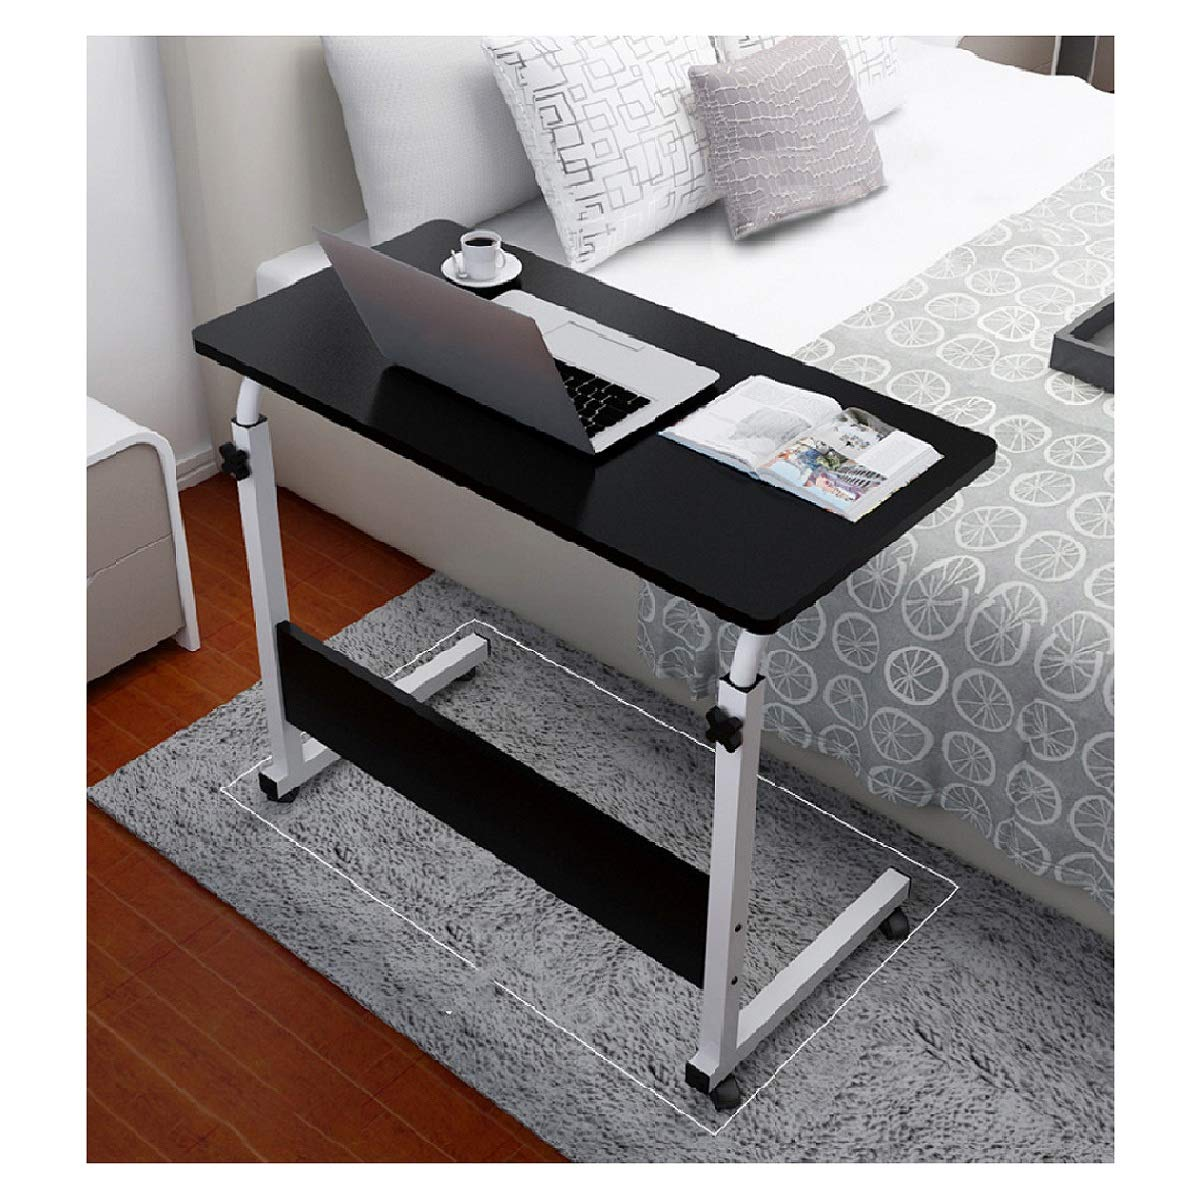 Hopeg 80x50cm Desktop Home Man Women Kids Simple Desk Office Sofa Table, Long Square Small Space Can Lift Mobile Laptop Computer Modern Black Industrial Style Laptop Notebook Multi-use Writing by Hopeg